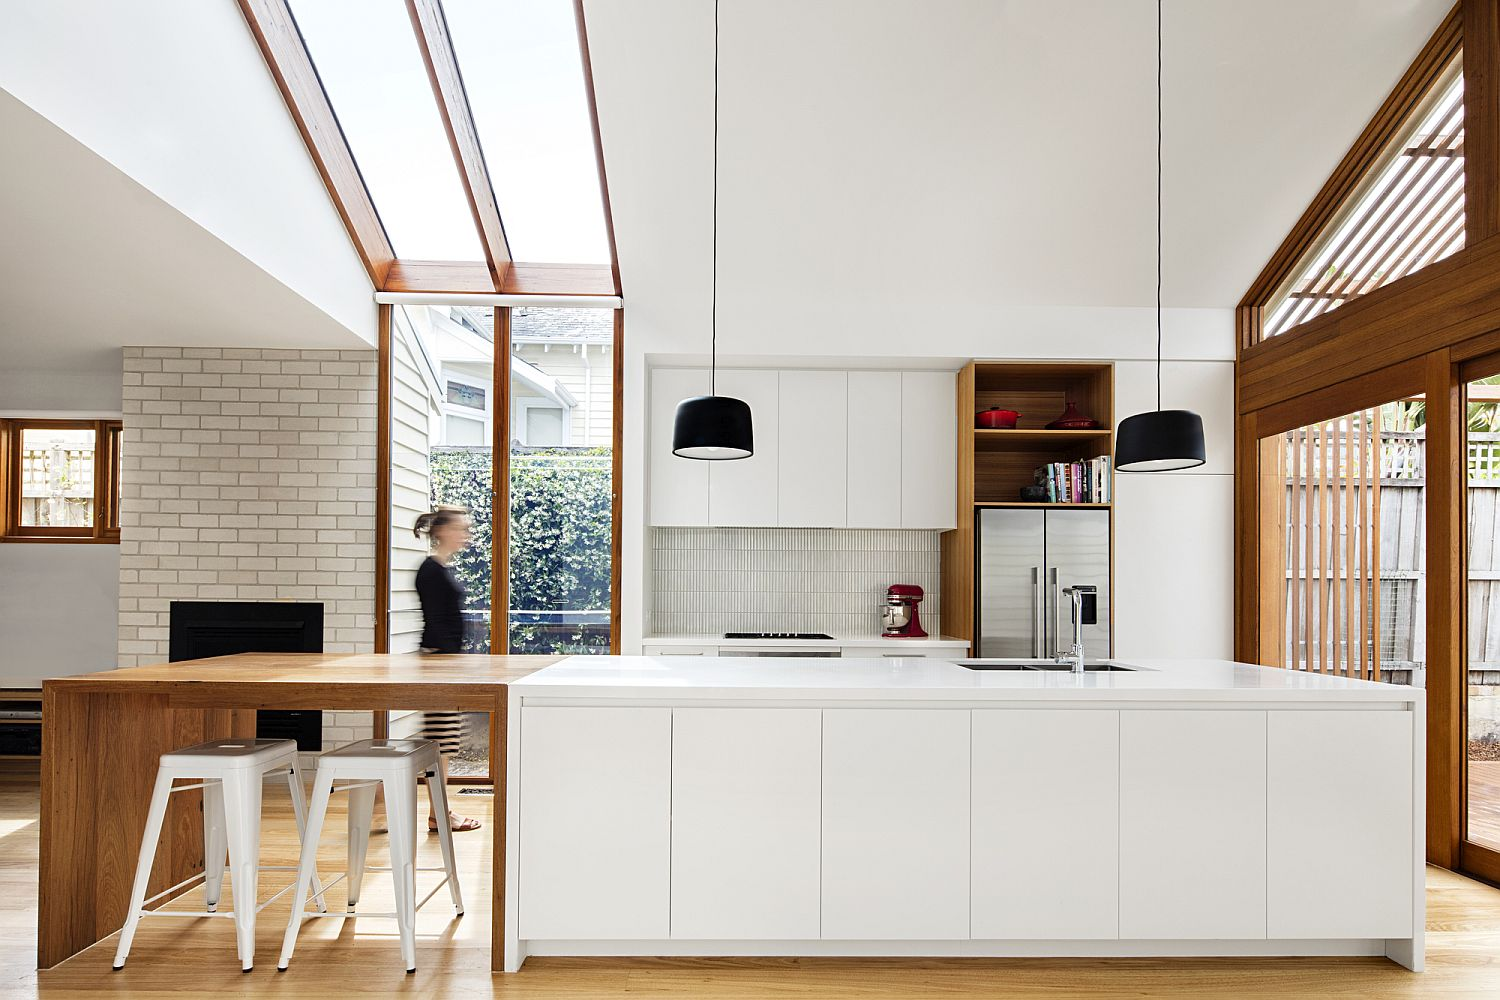 Modern kitchen in white with wooden cabinets and extended breakfast bench